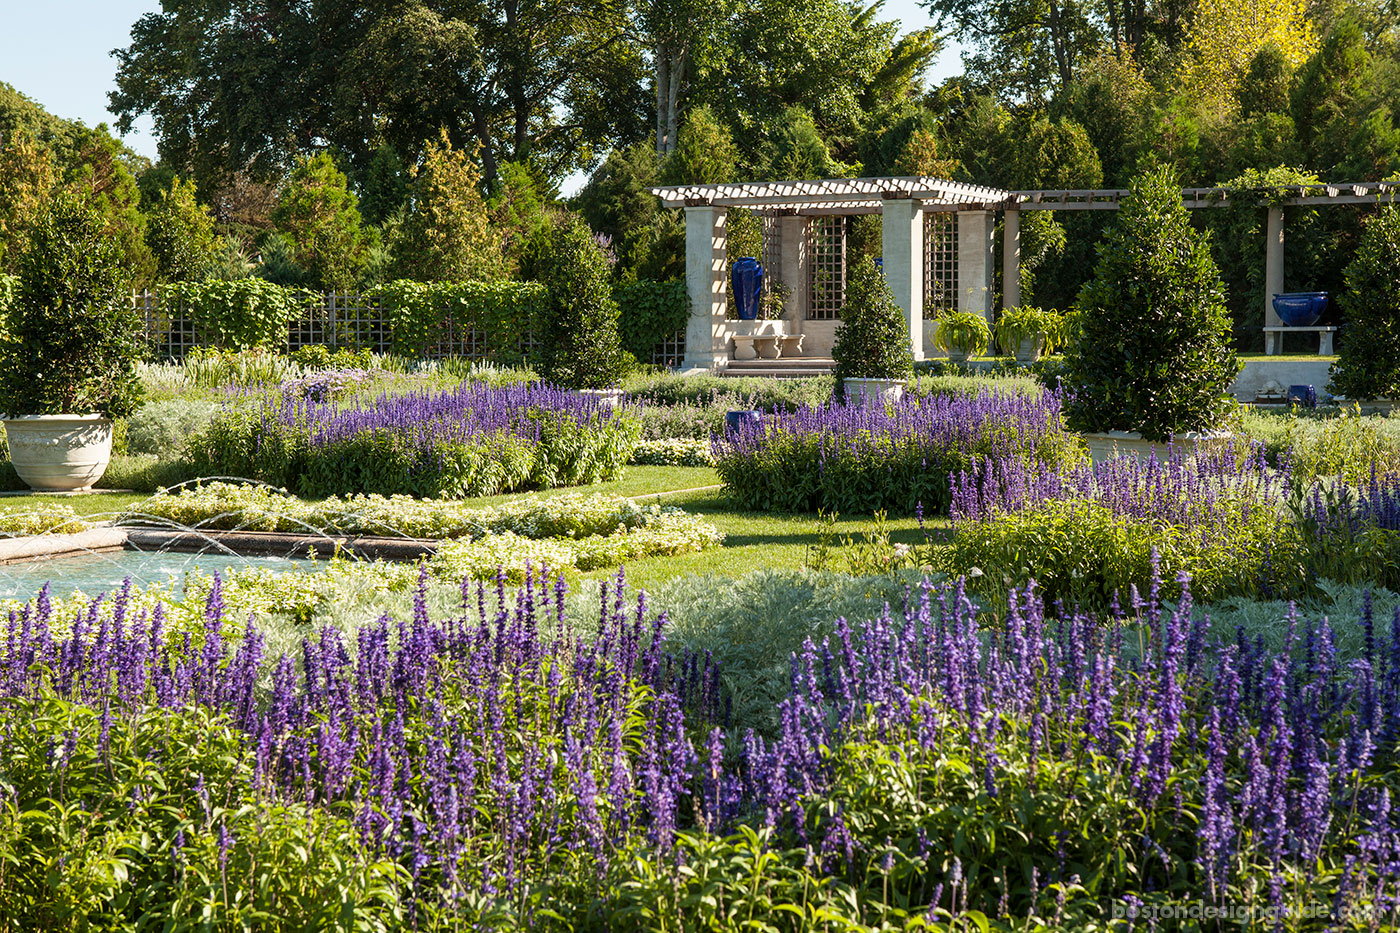 Historic Blue Garden cultivated and maintained by R.P. Marzilli & Company